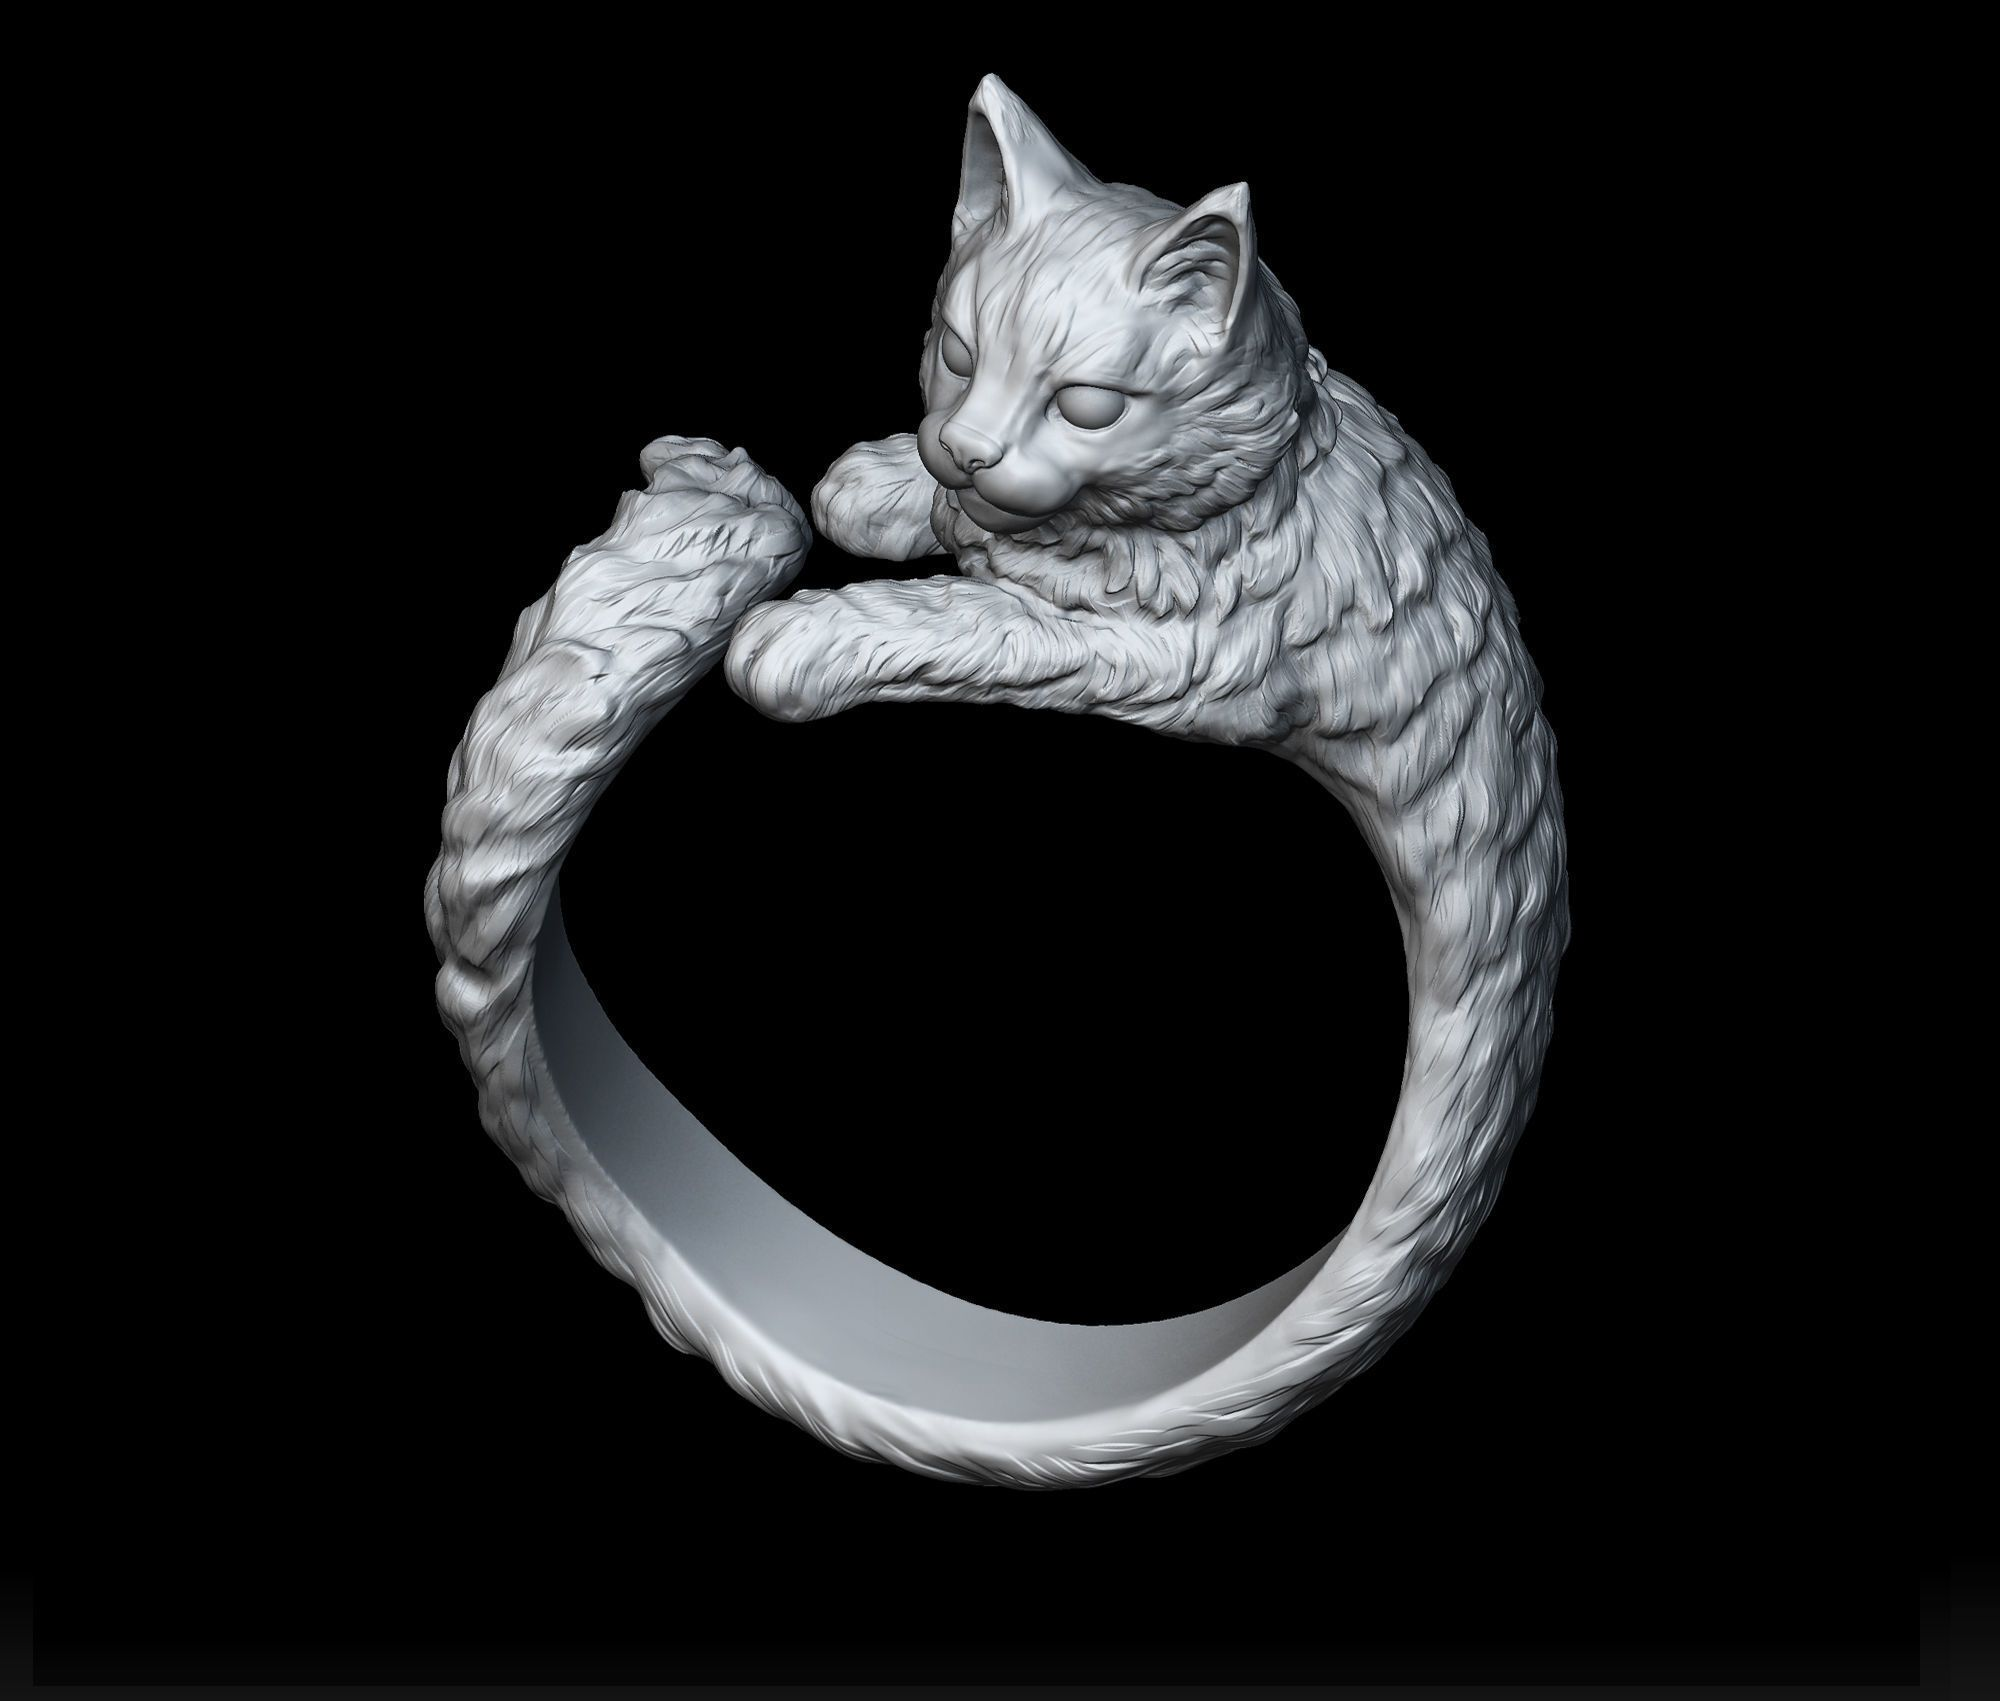 High detailed cat ring 3D Print Model Cat ring, 3d